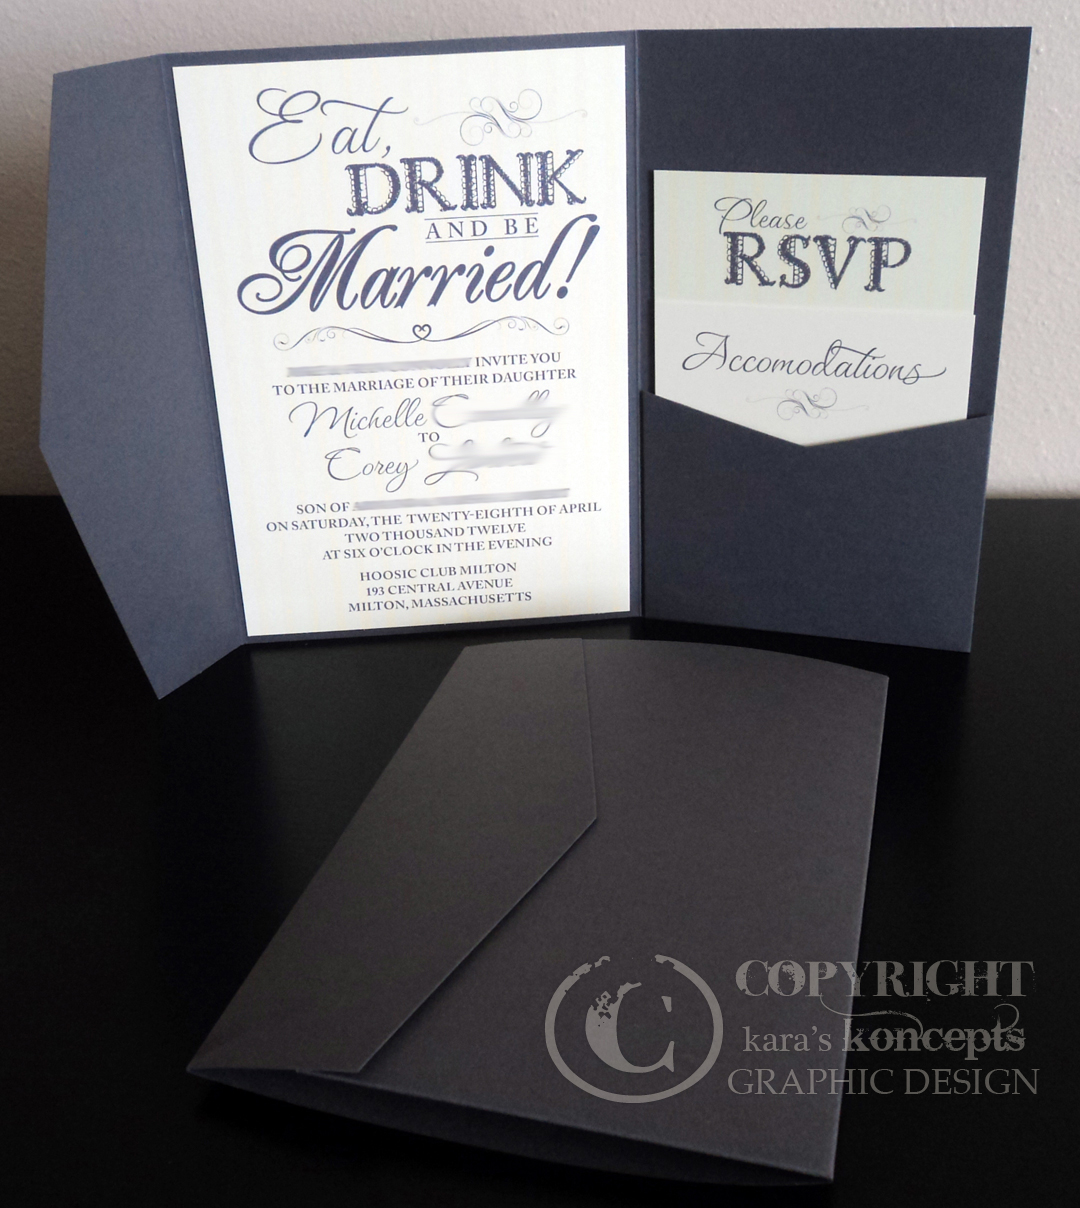 Michelle + Coreyu0027s Pocketfold Invitations   Eat, Drink U0026 Be Married!